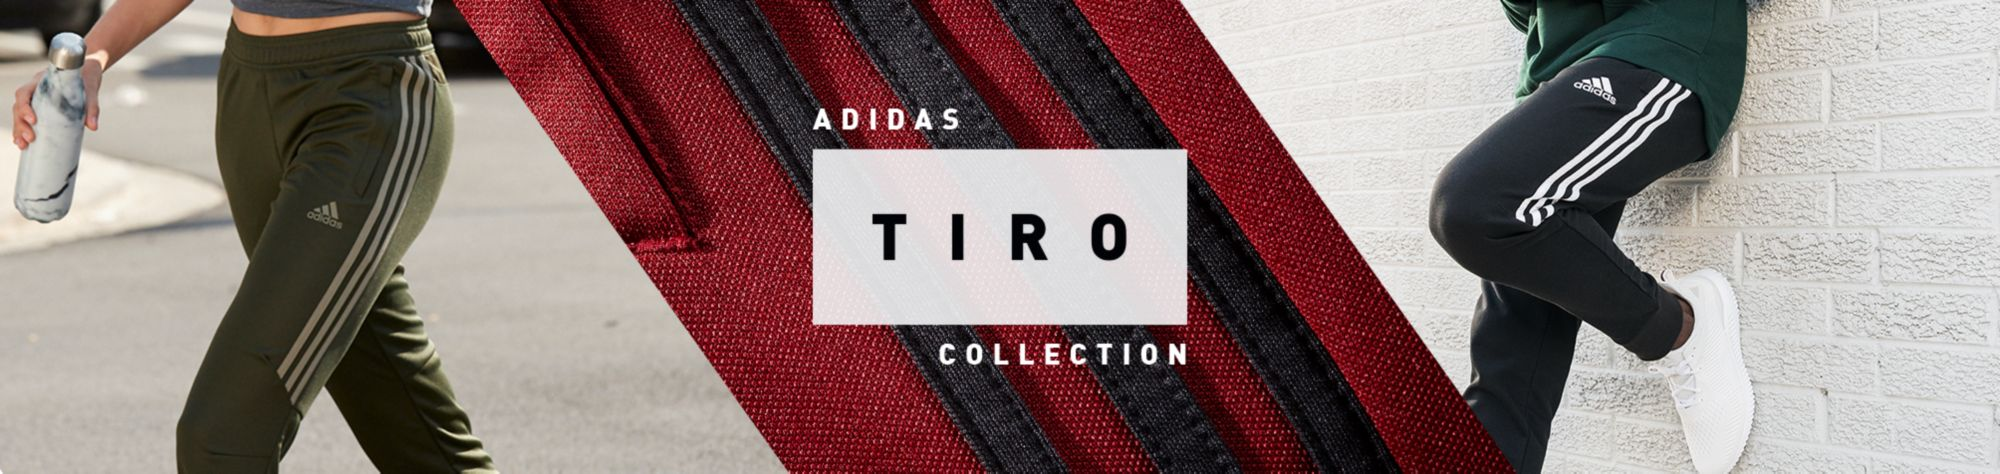 Adidas Tiro Pants Starting at #39.98 - Shop Now